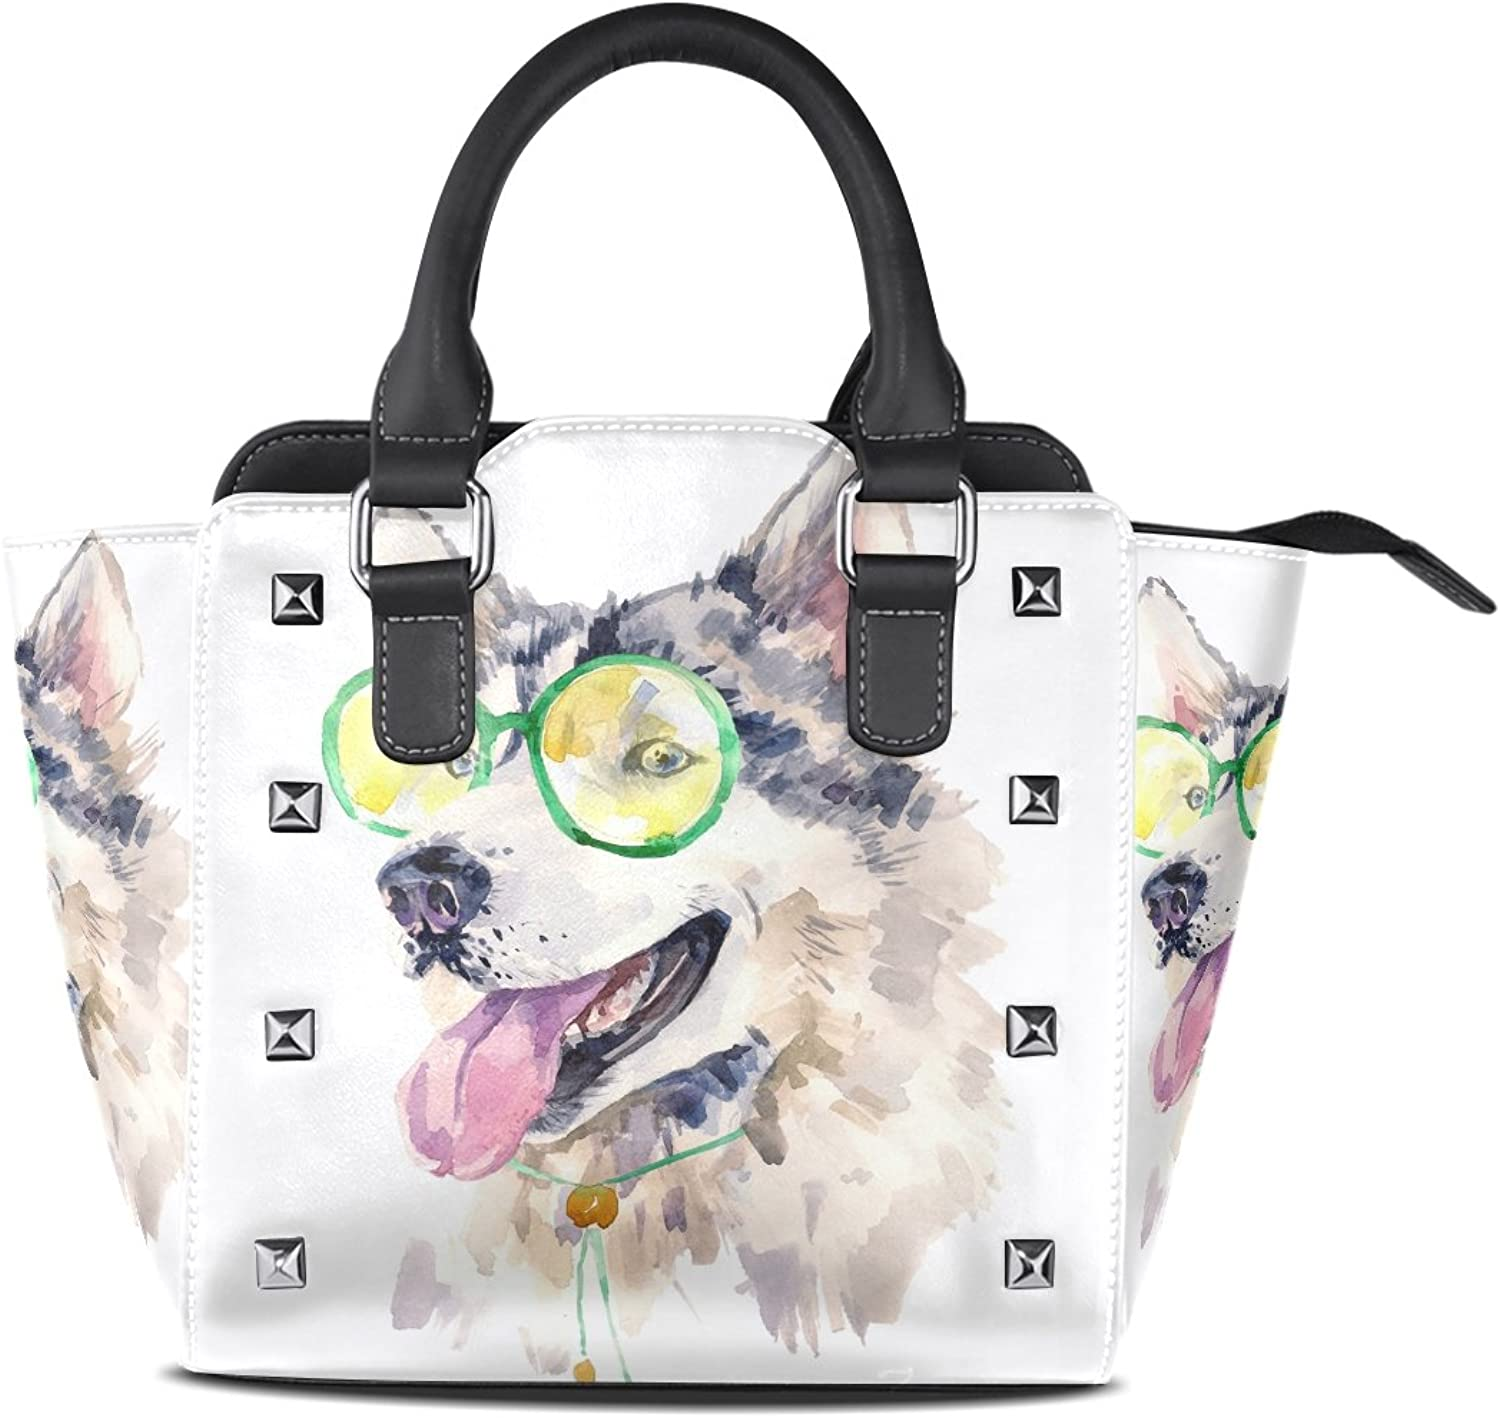 My Little Nest Women's Top Handle Satchel Handbag Watercolor Husky Dog Ladies PU Leather Shoulder Bag Crossbody Bag